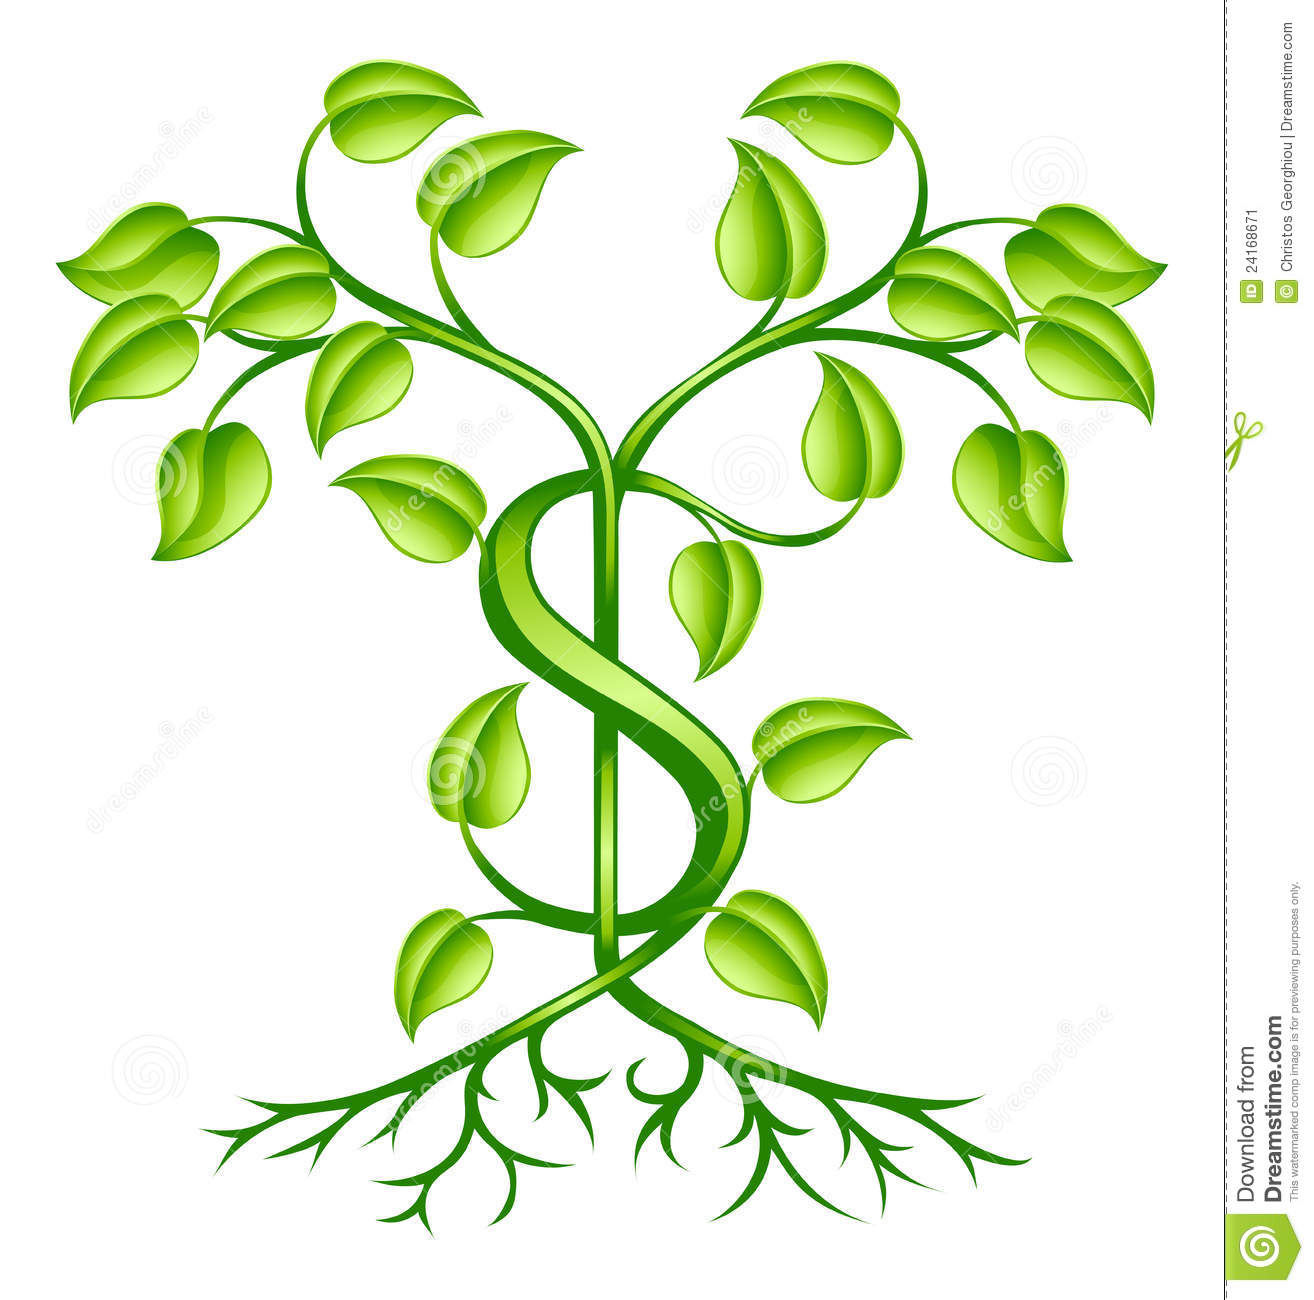 Money plant images clipart jpg free Money plant images clipart - ClipartFest jpg free